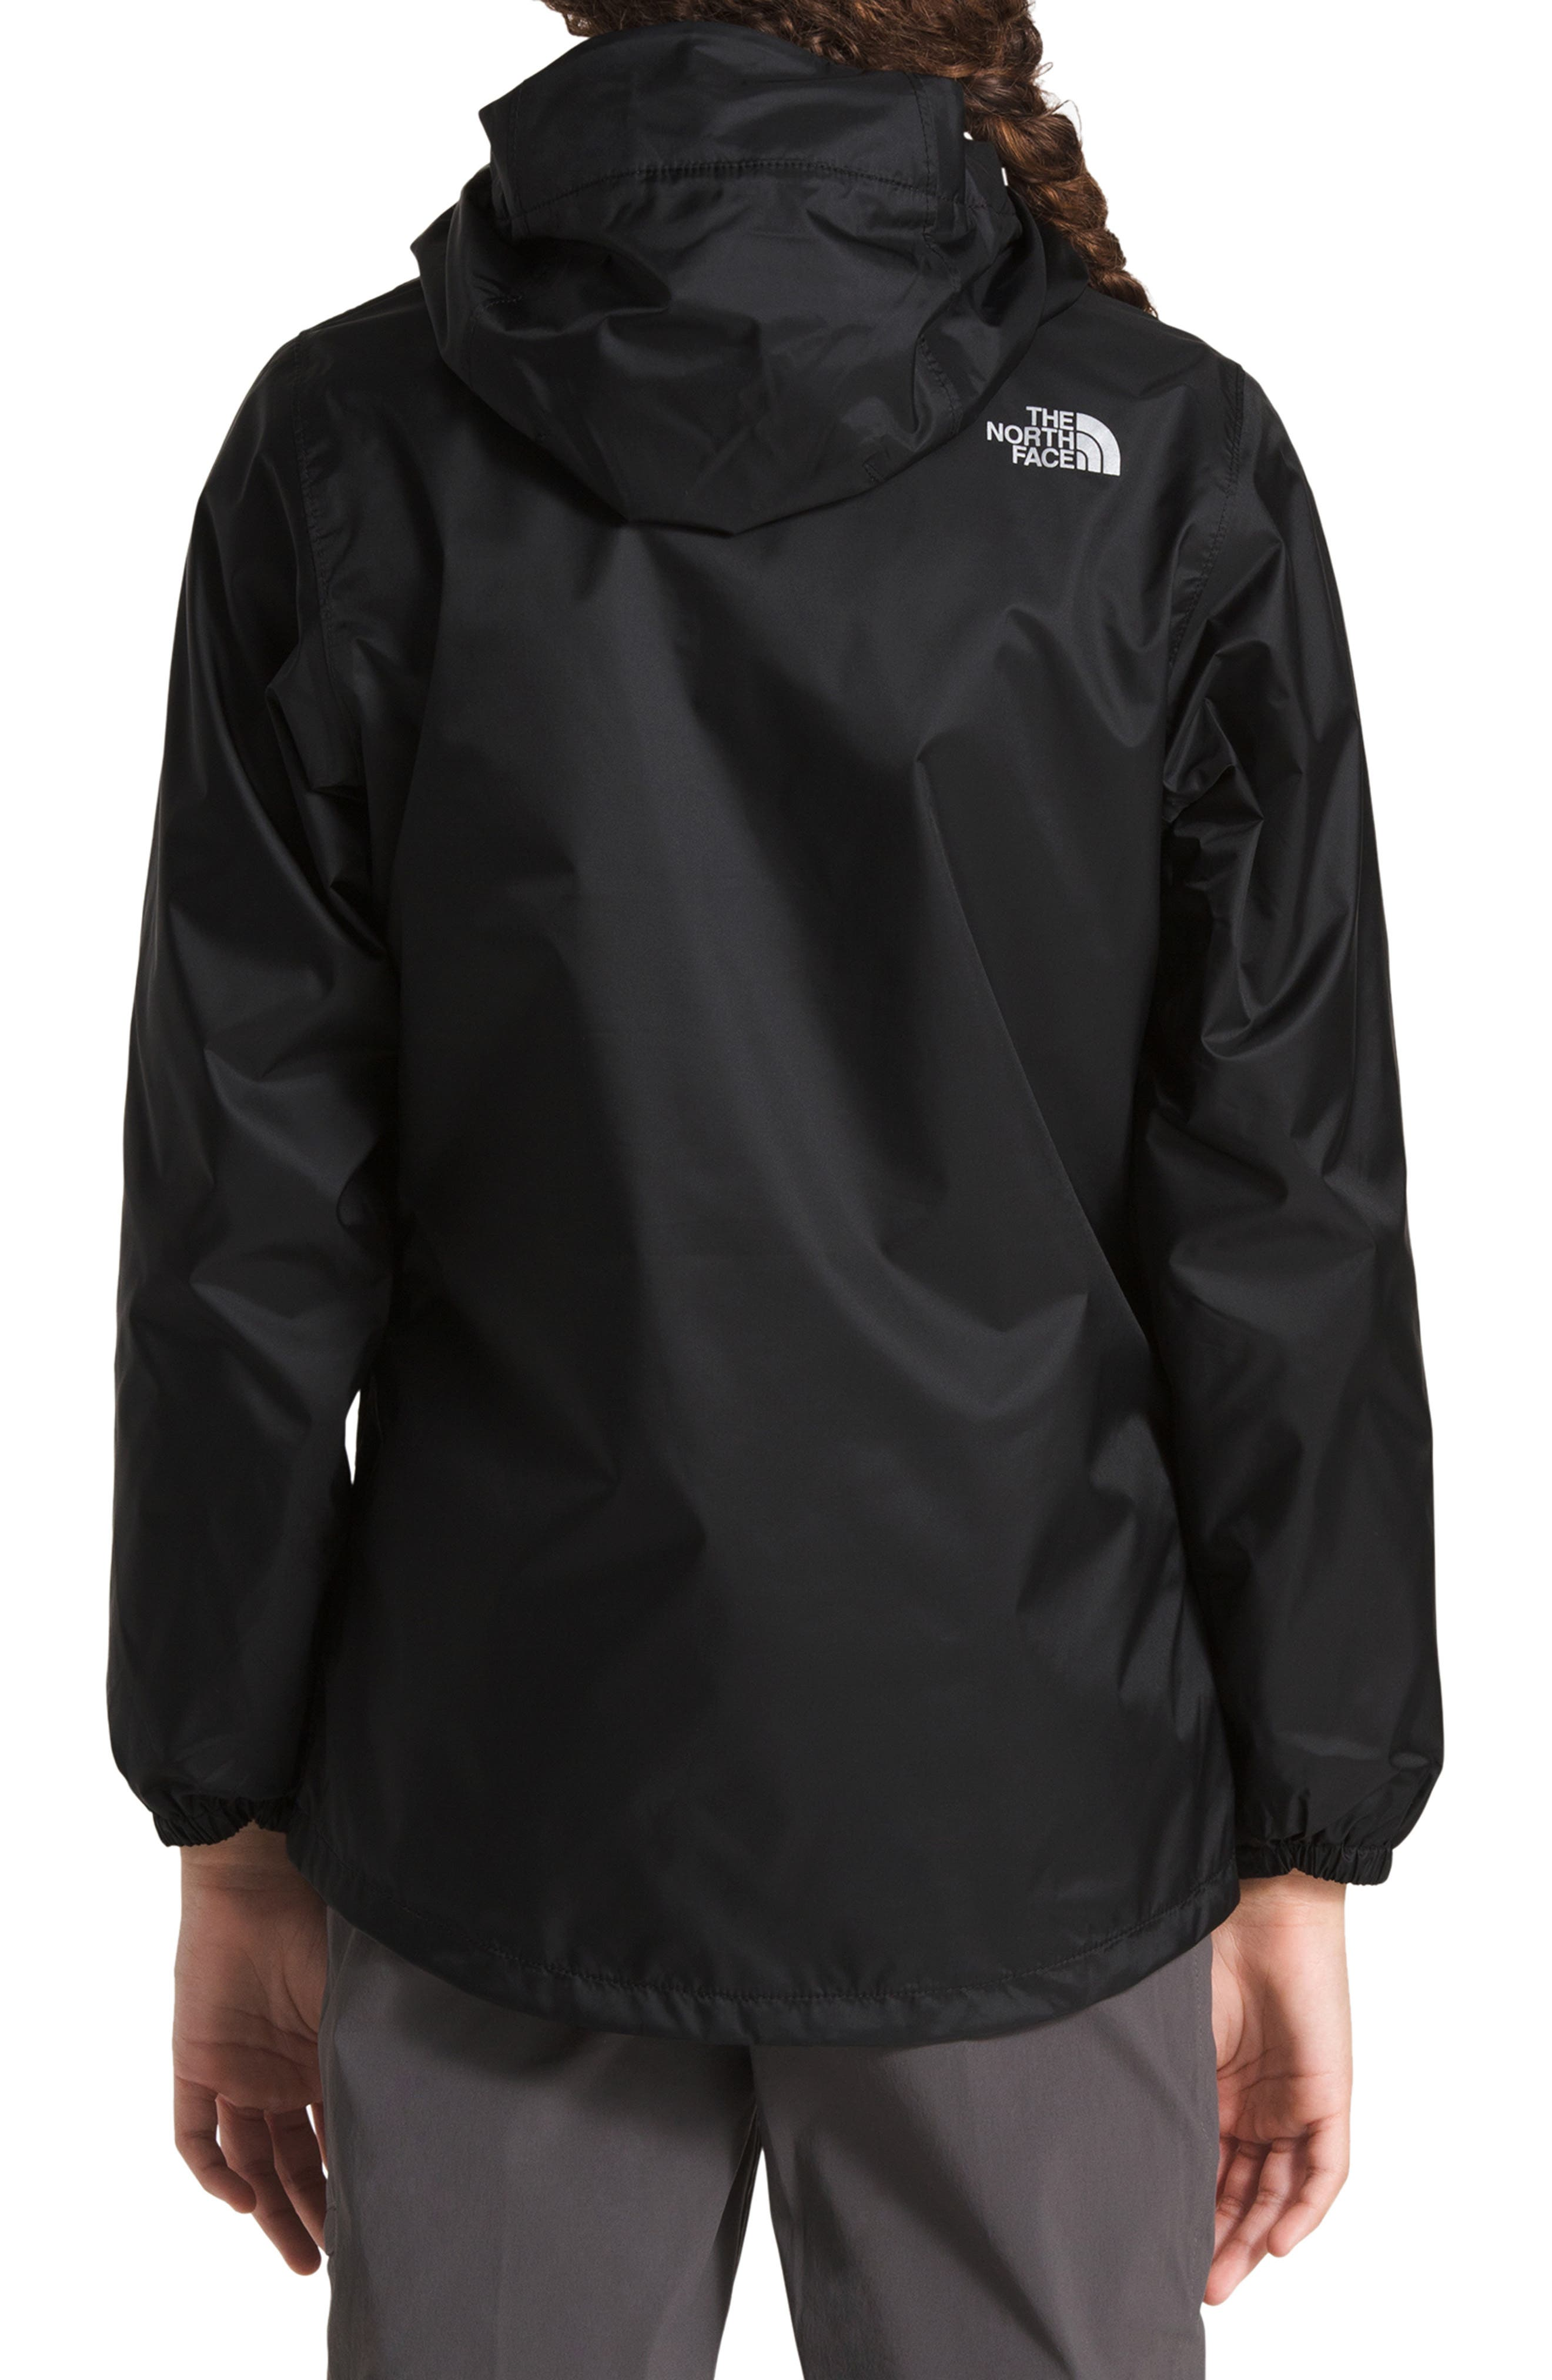 Stormy Rain Triclimate<sup>®</sup> Waterproof 3-in-1 Jacket,                             Alternate thumbnail 3, color,                             TNF BLACK